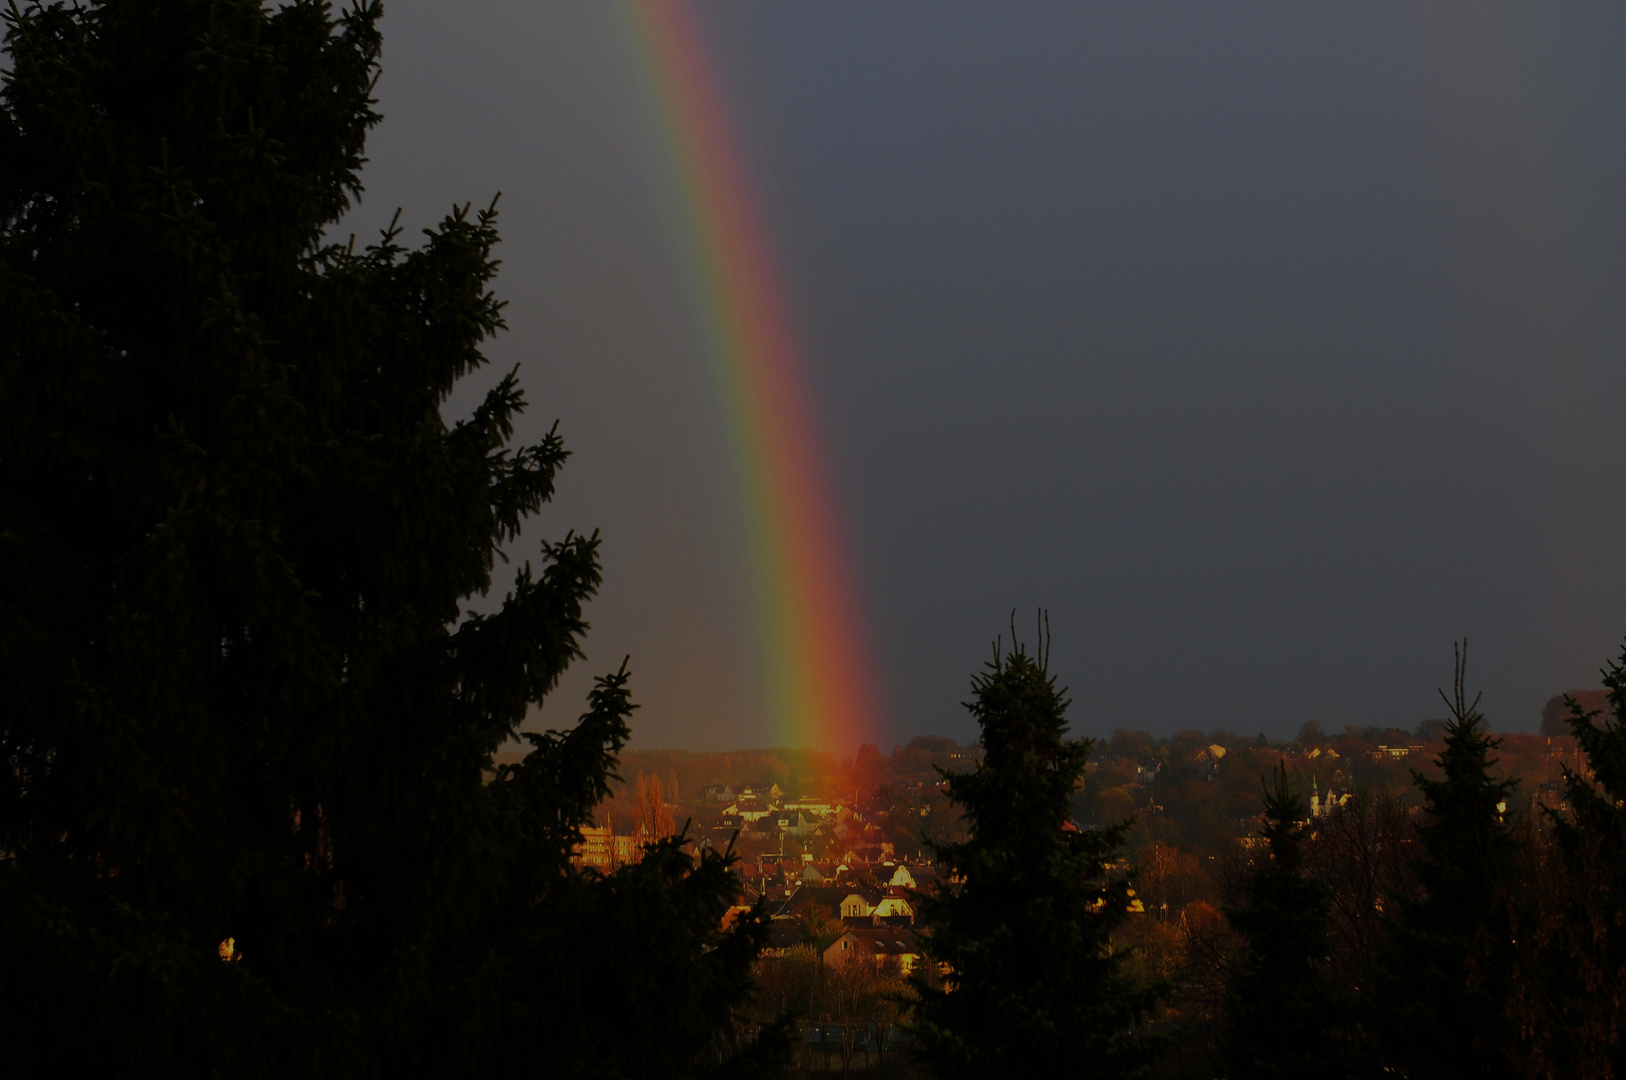 Rainbow In The Dark